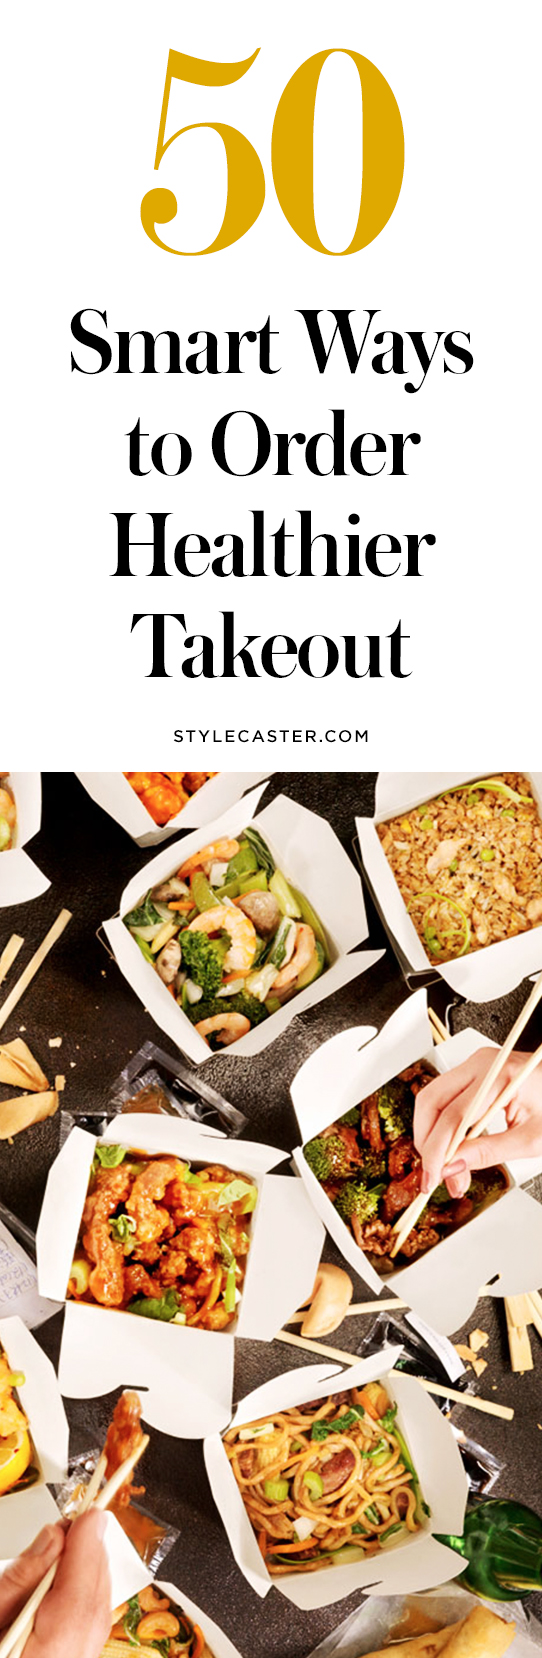 50 ways to order healthy takeout | @stylecaster